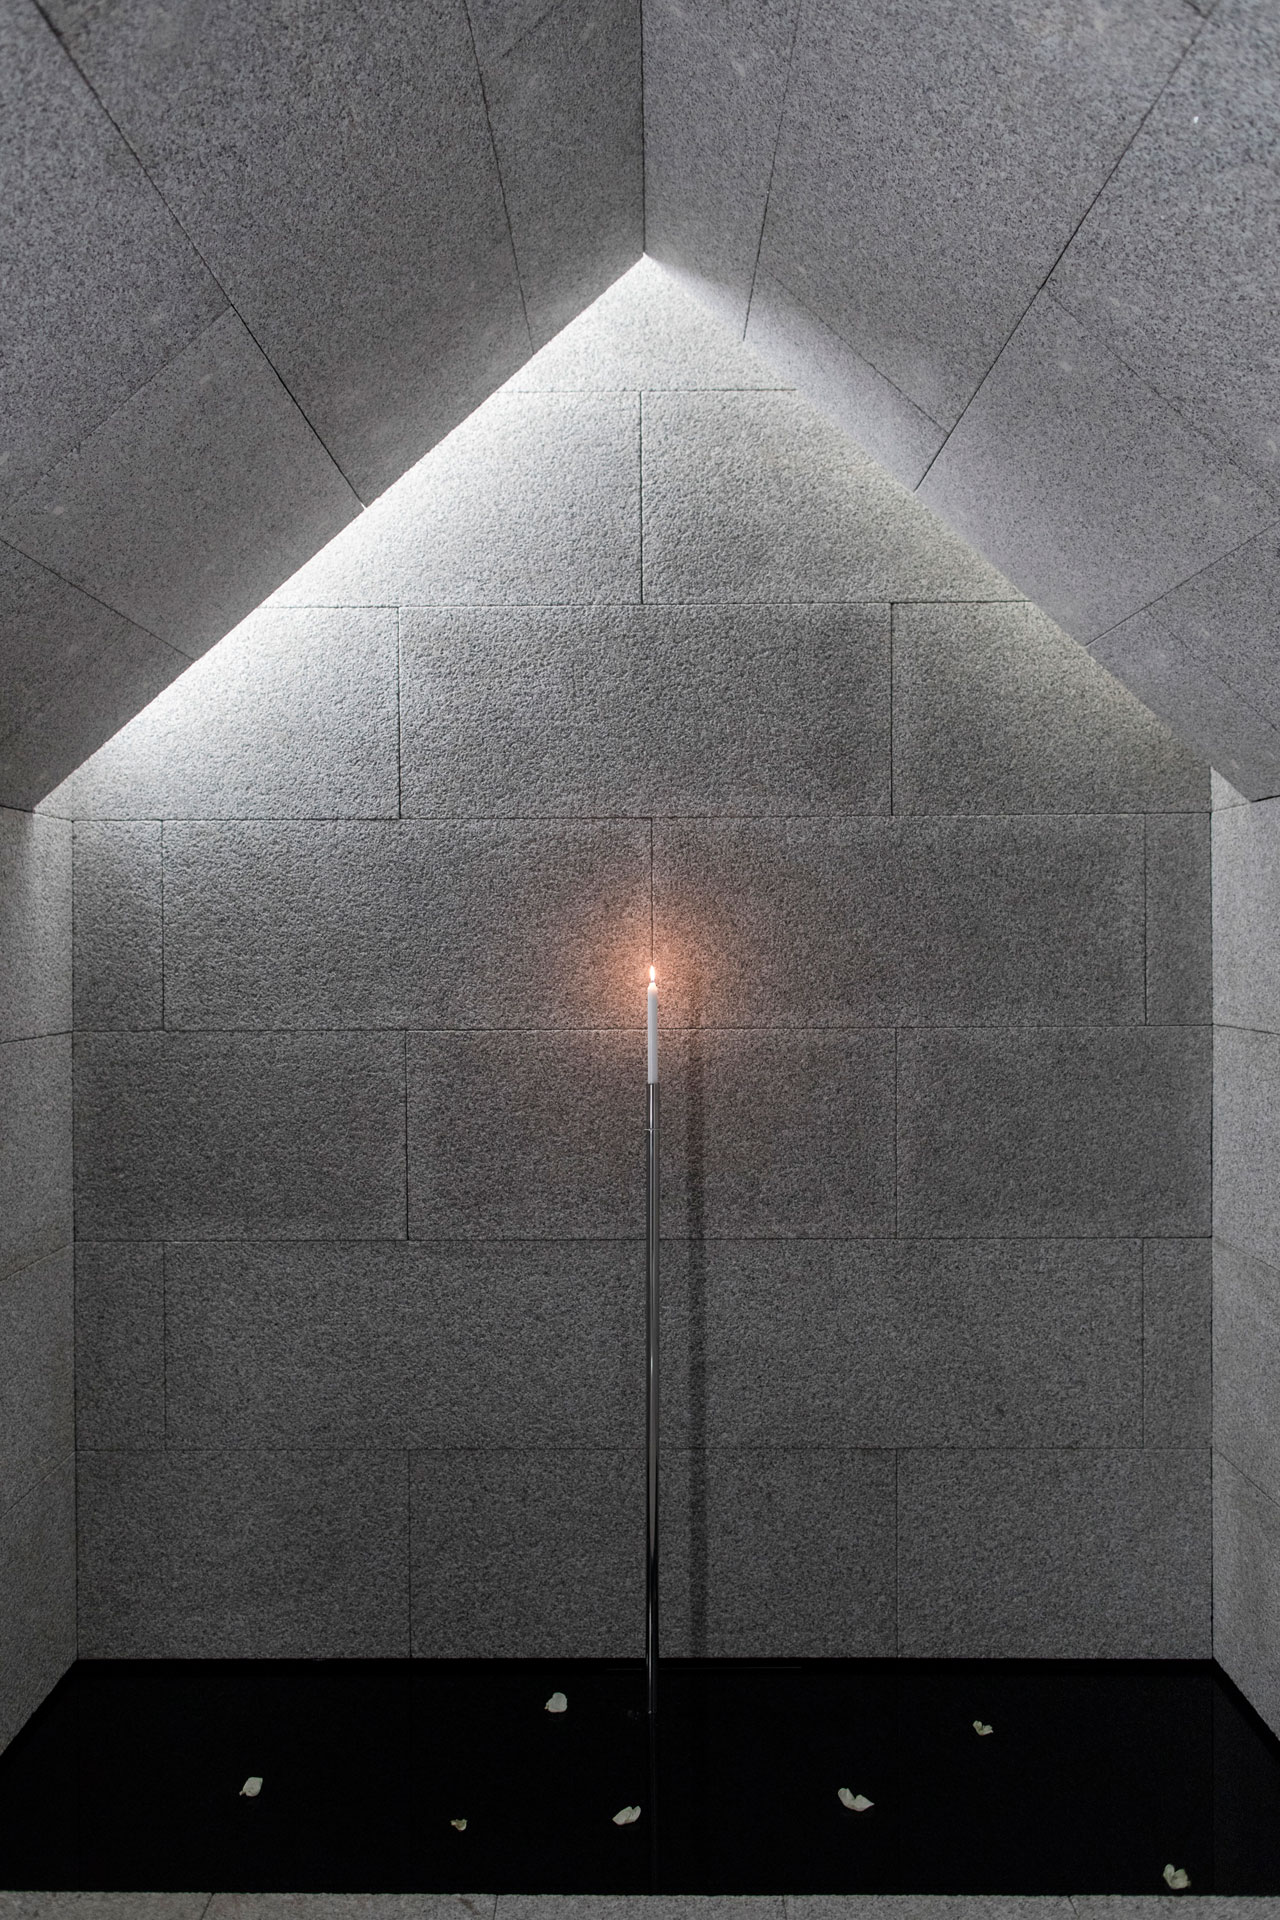 """FARE LUCE(Shedding Light)installation by architect Giovanni Maria Filindeu for Foscarini Spazio Brera.""""Six different settings, each corresponding to different forms of light, drawing on his childhood memories and special moments with light."""""""